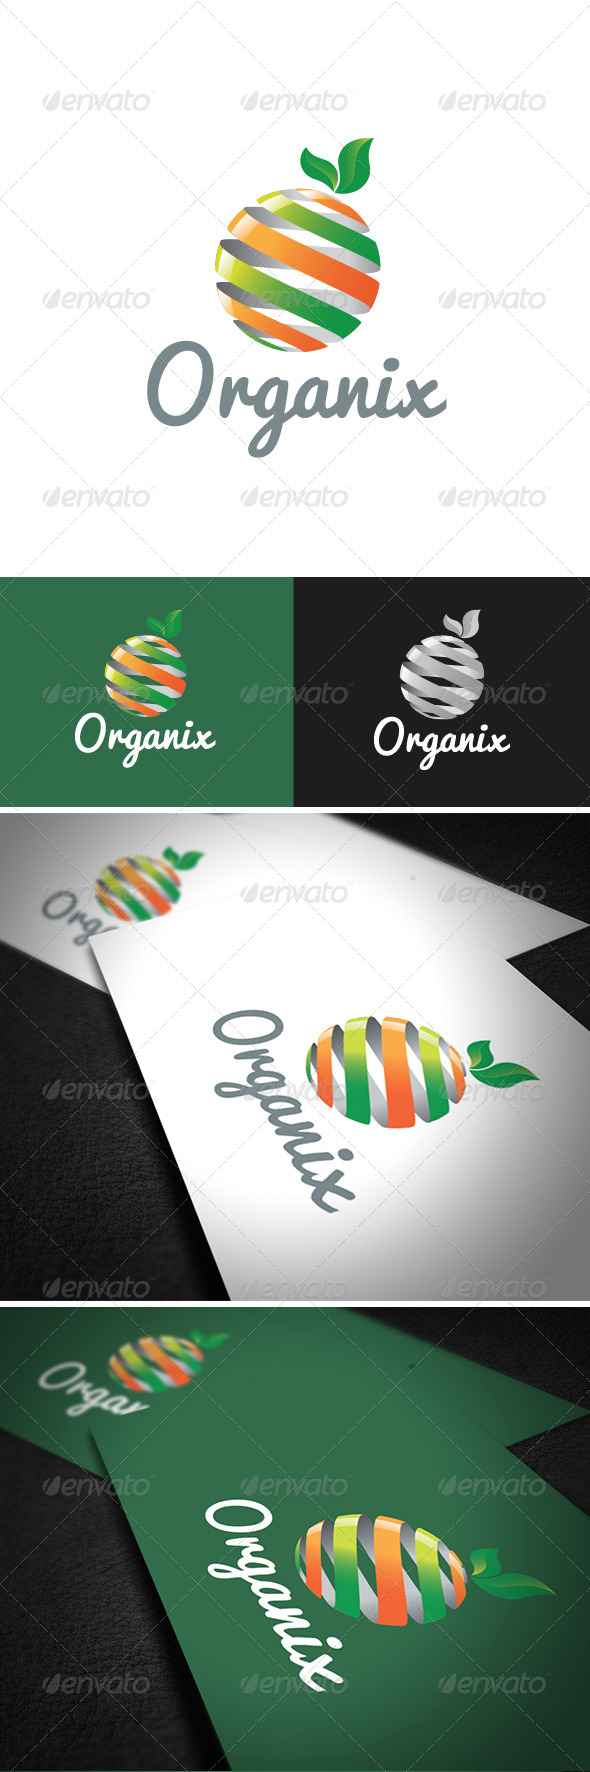 Organix Logo Template - Vector Abstract